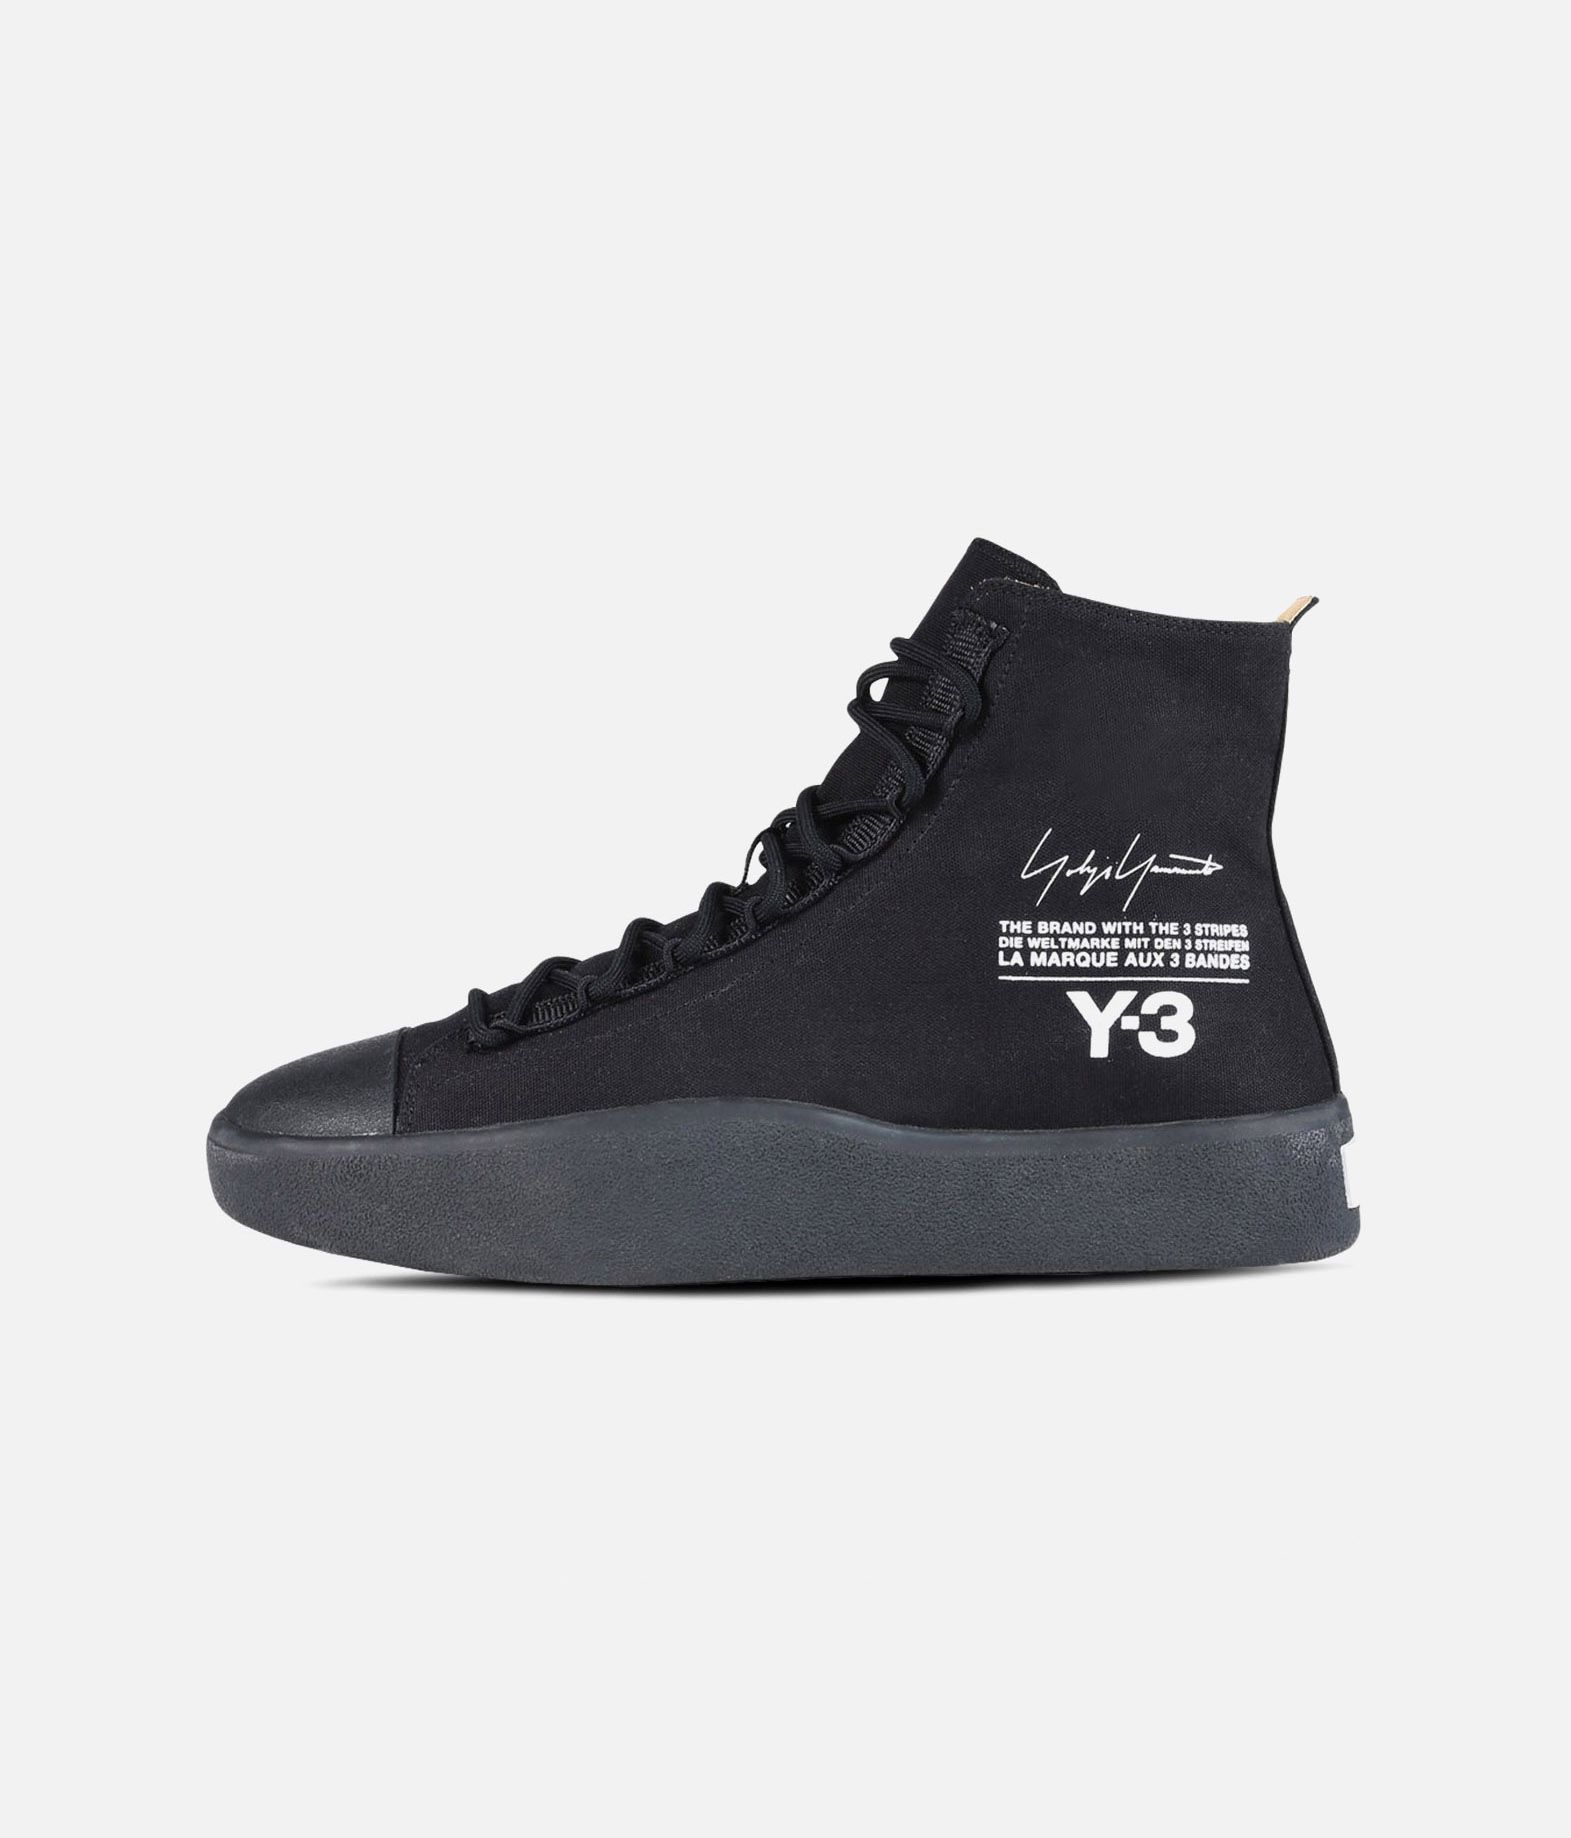 7410a18f5 ... Y-3 Y-3 BASHYO High-top sneakers E f ...